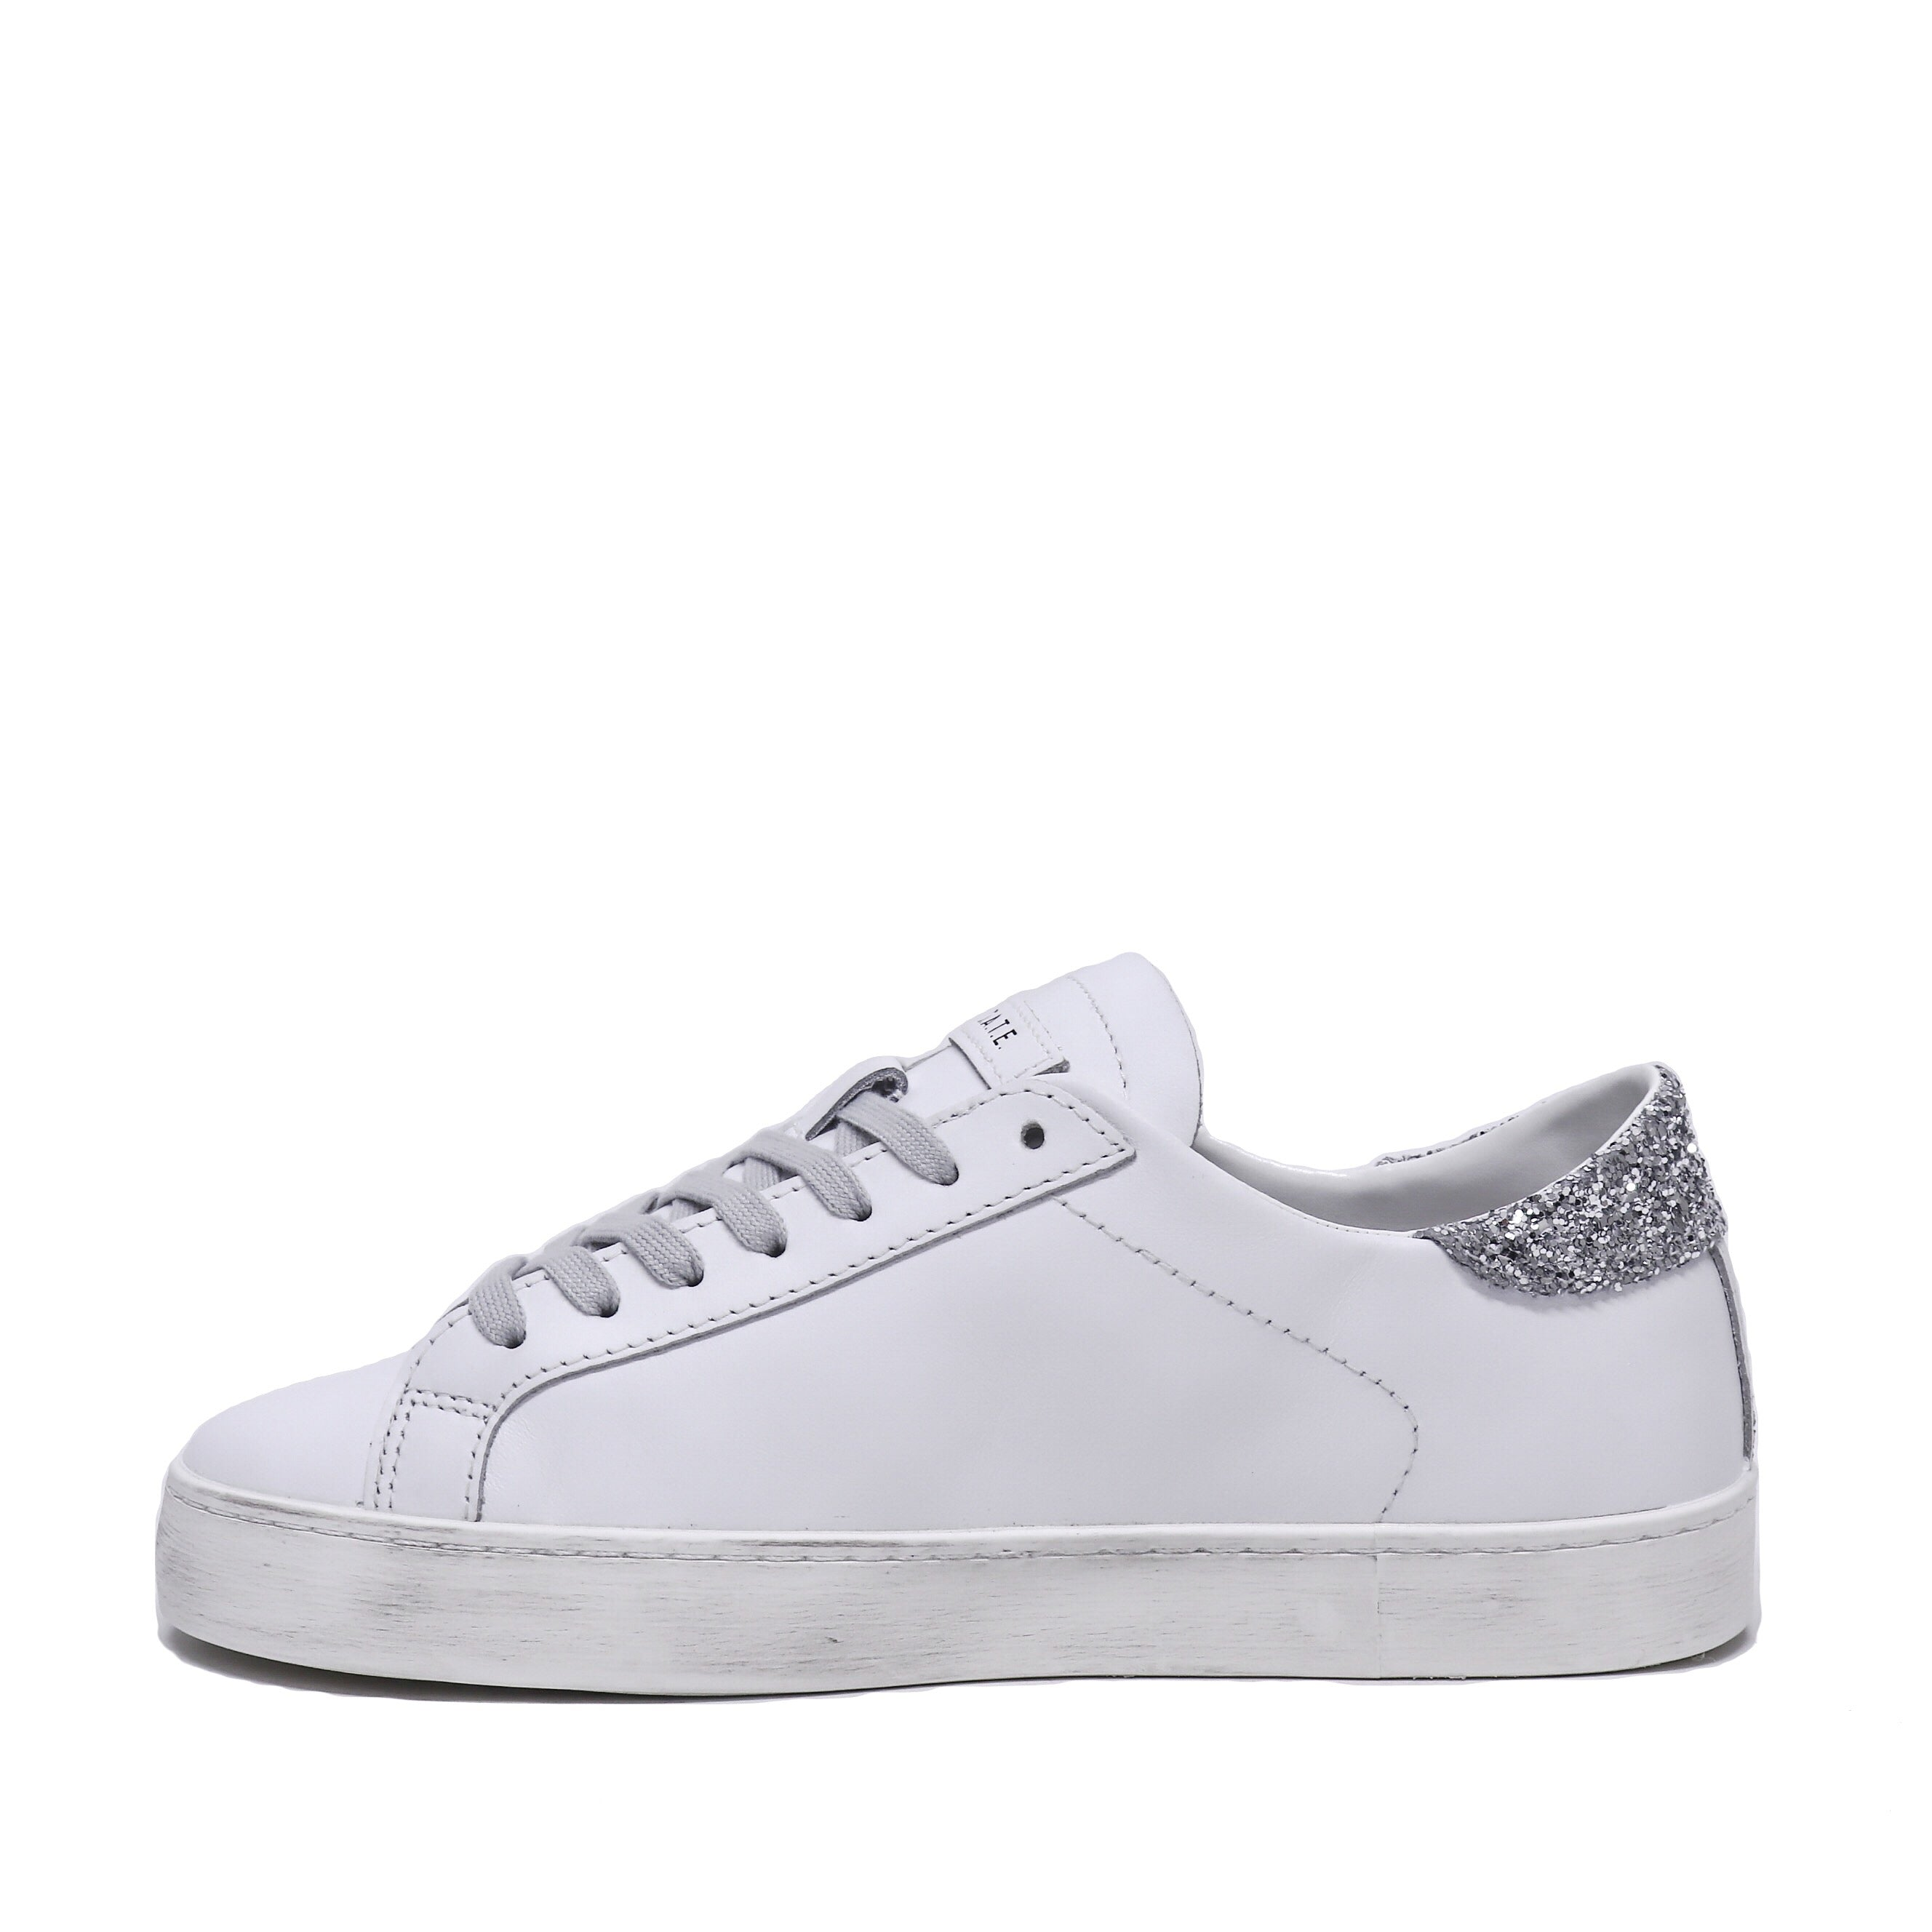 D.a.t.e Sneaker Hill Low Calf White Date W